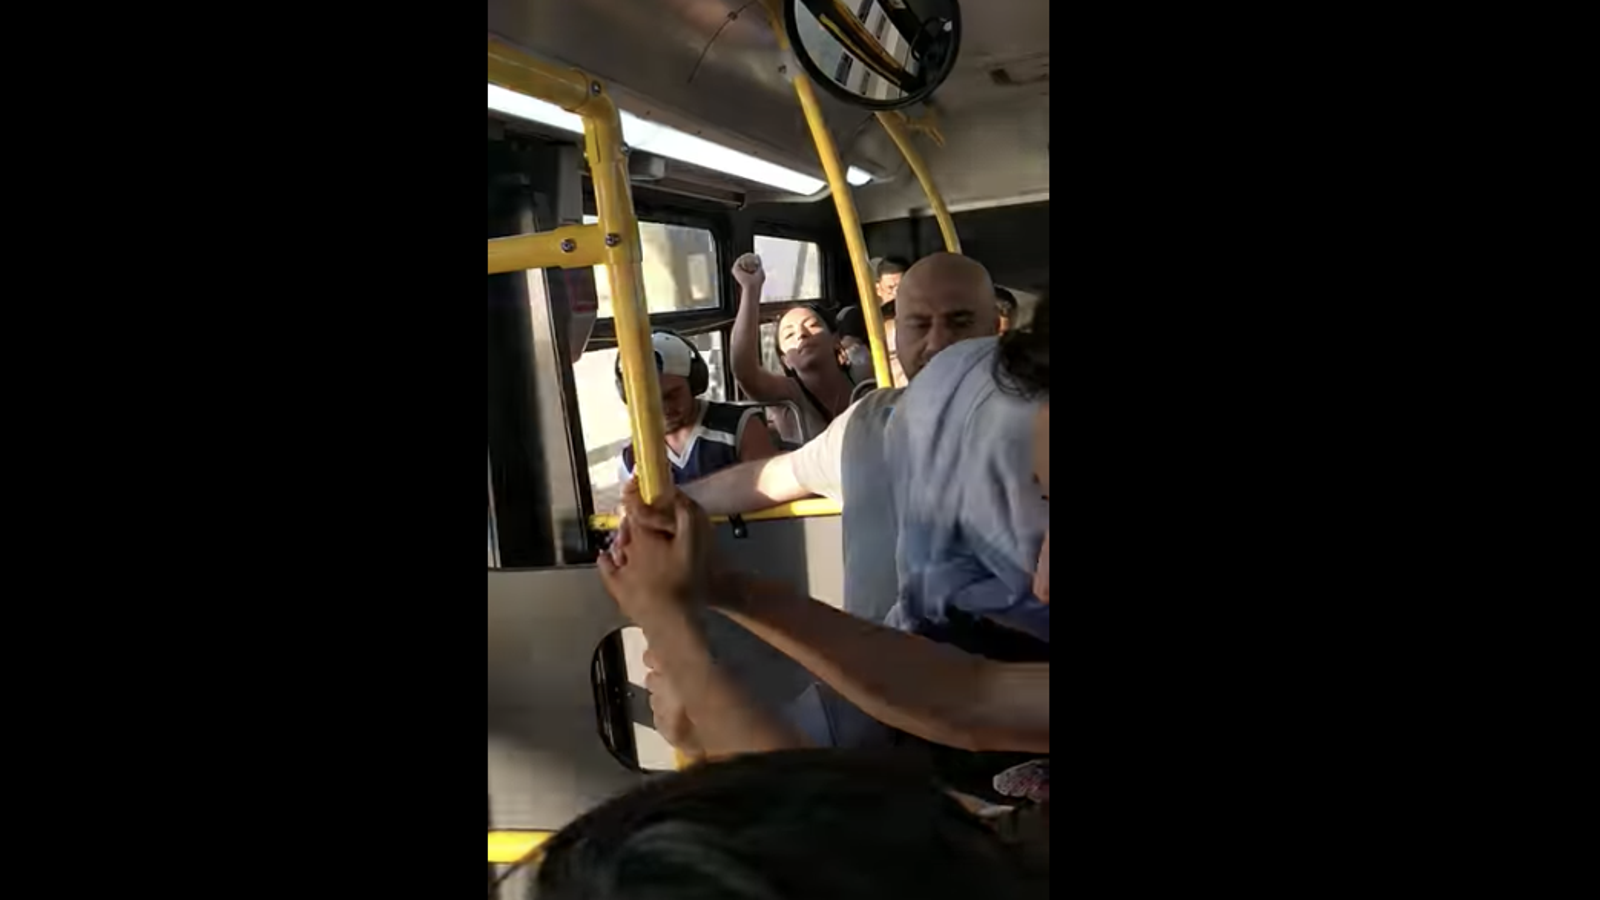 Woman Goes on Hate-Filled Anti-Muslim Rant on New York City Bus: 'ICE is Here For You'